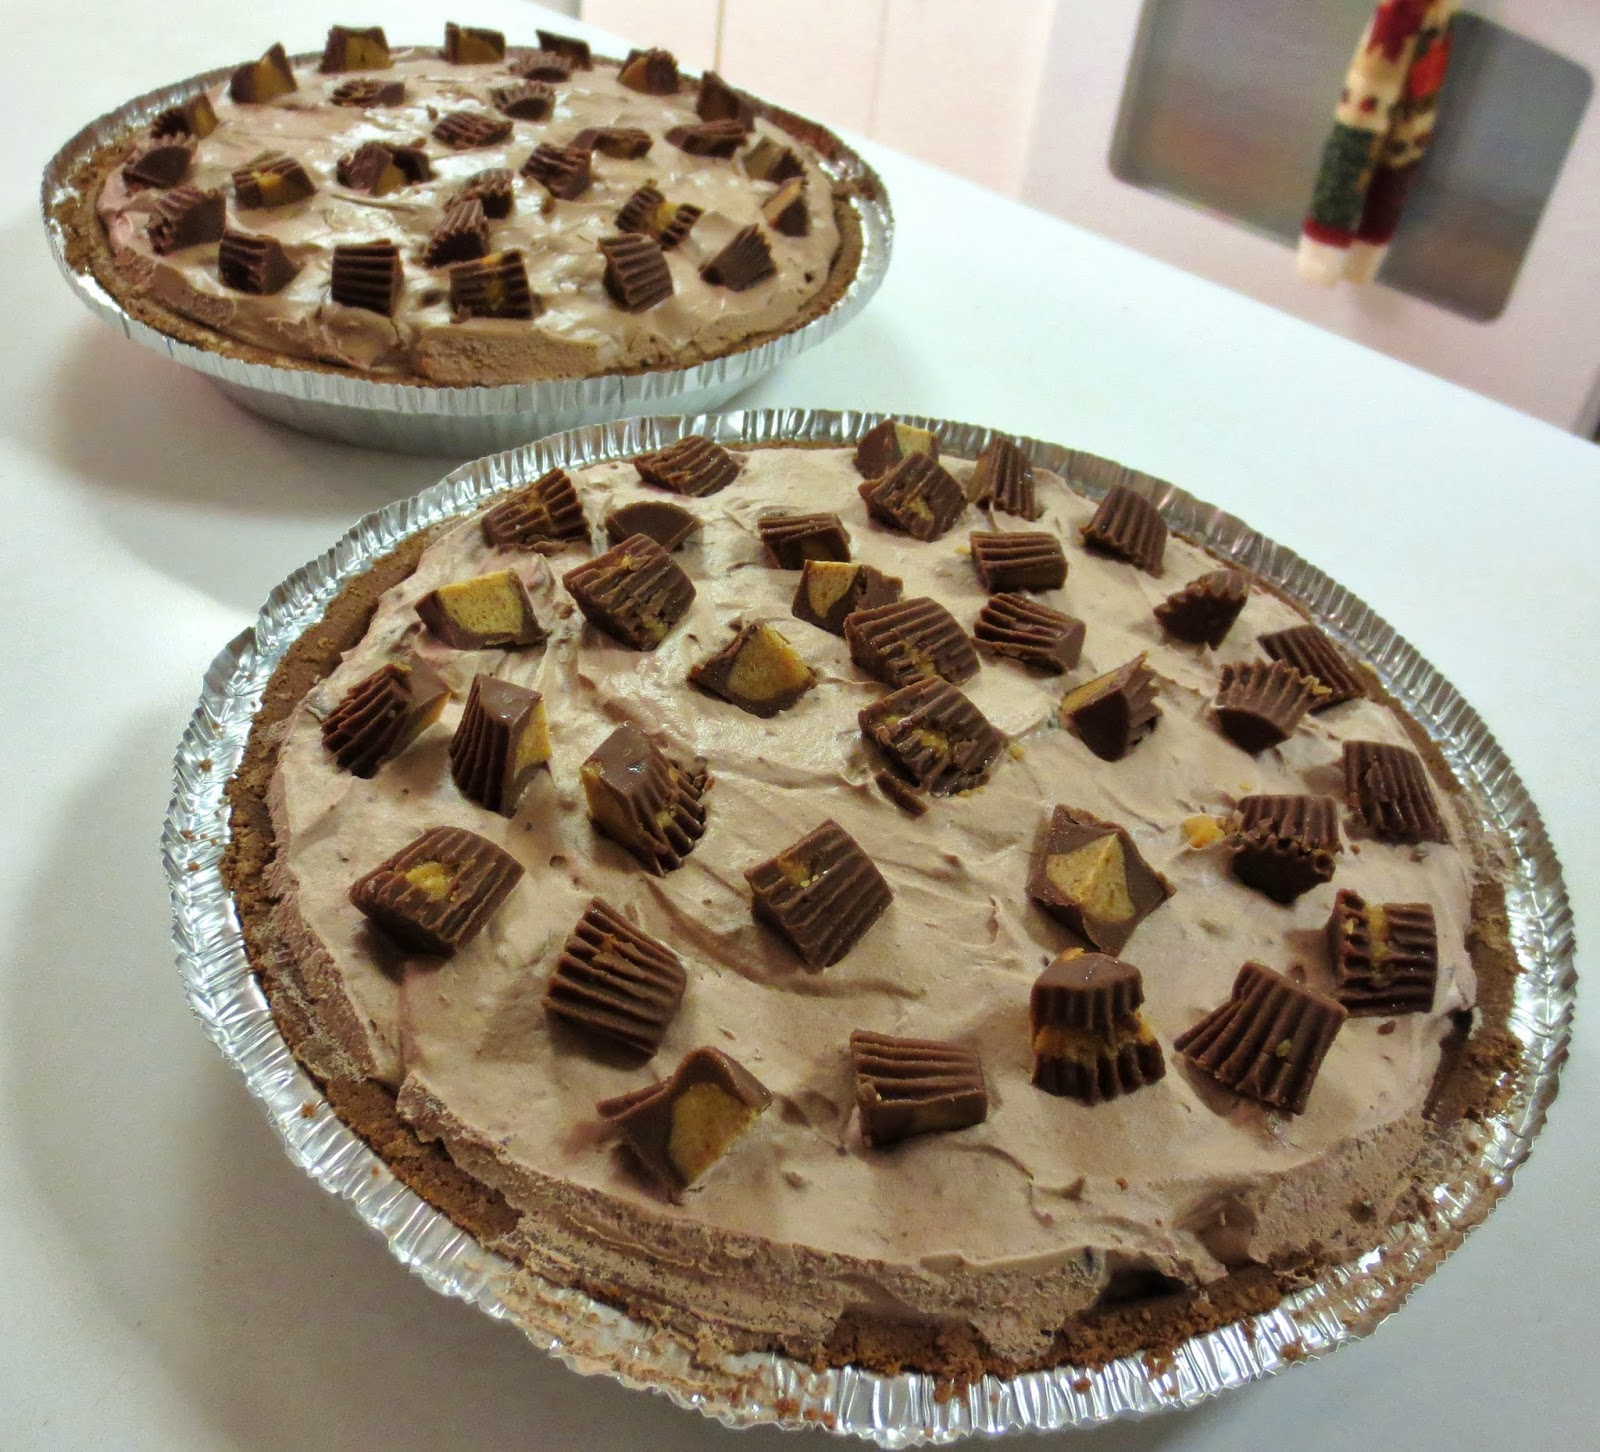 ... , Pies, & Preschool Pizzazz: Friday Pie-Day: Peanut Butter Cup Pie